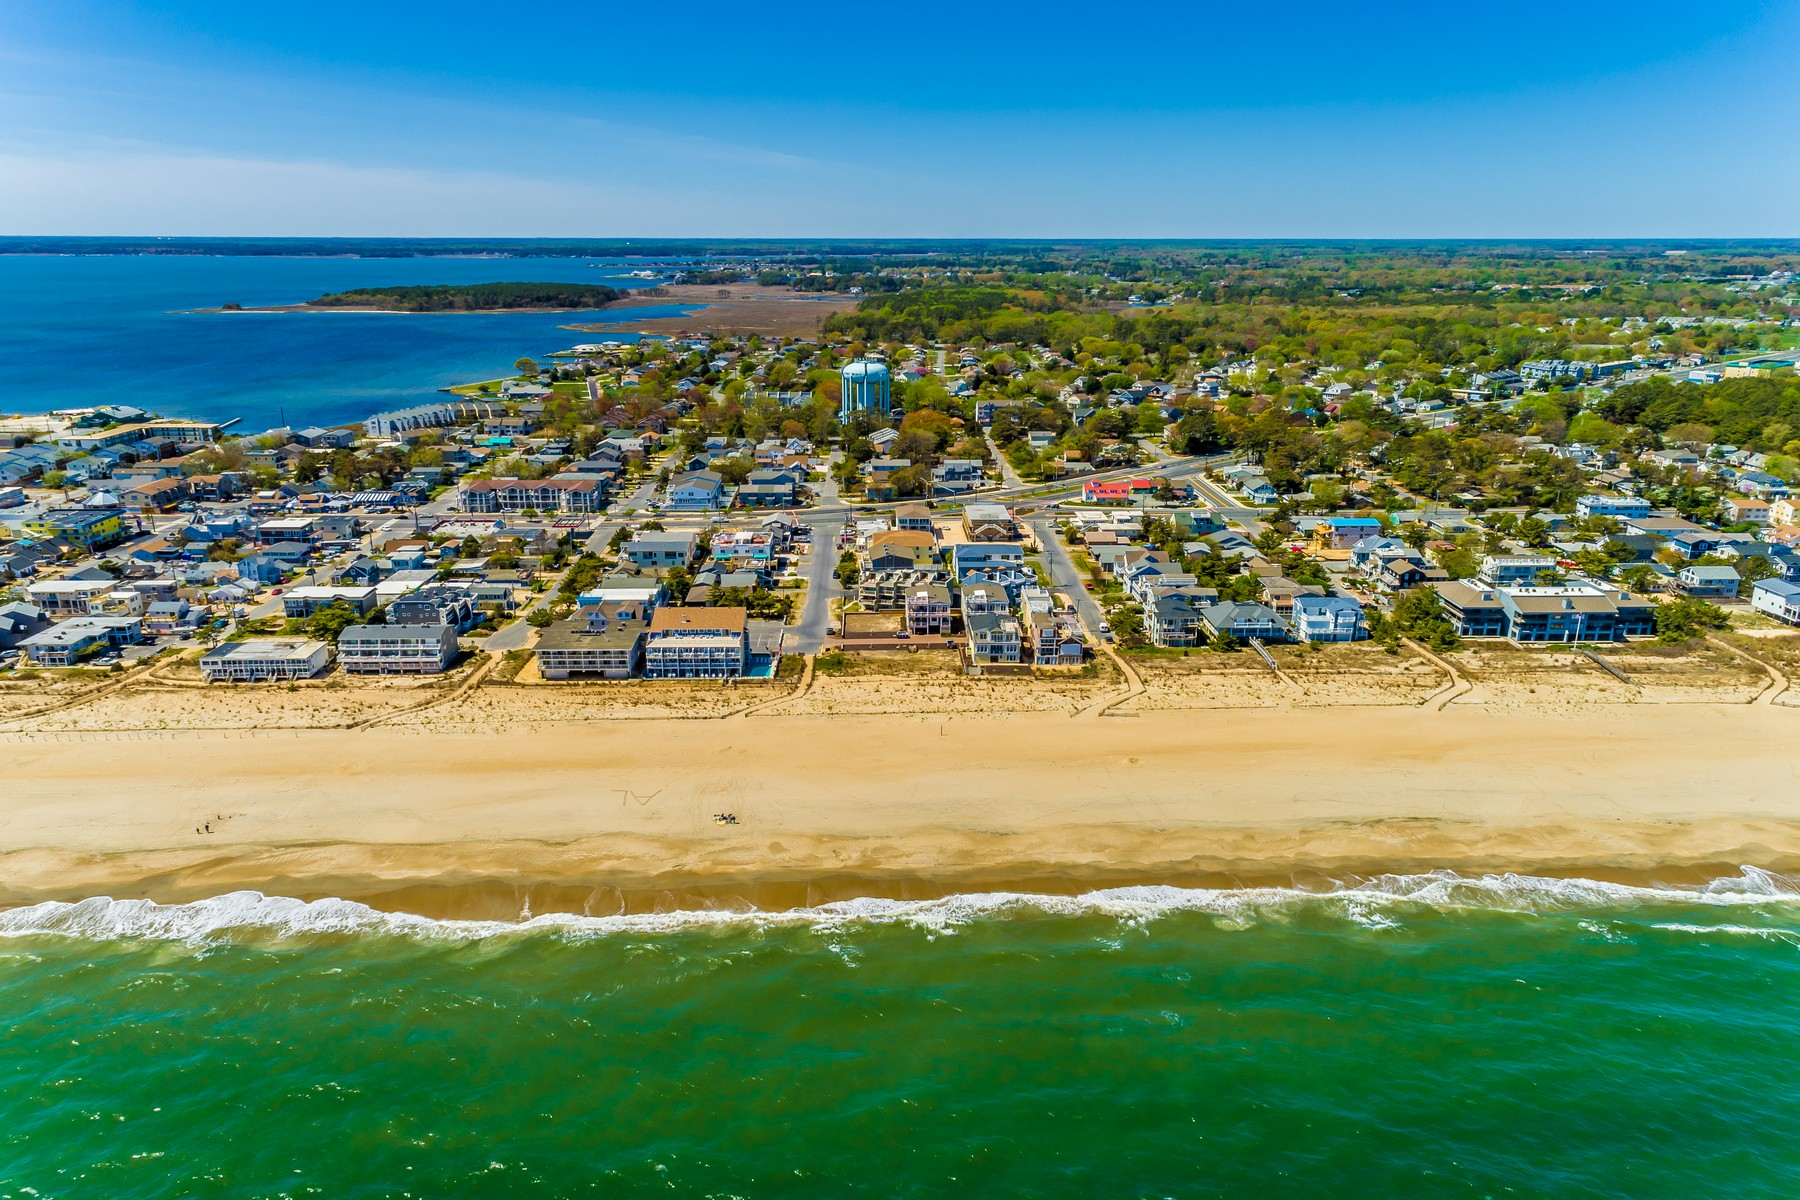 Single Family Homes for Sale at 106 West Street Dewey Beach, Delaware 19971 United States